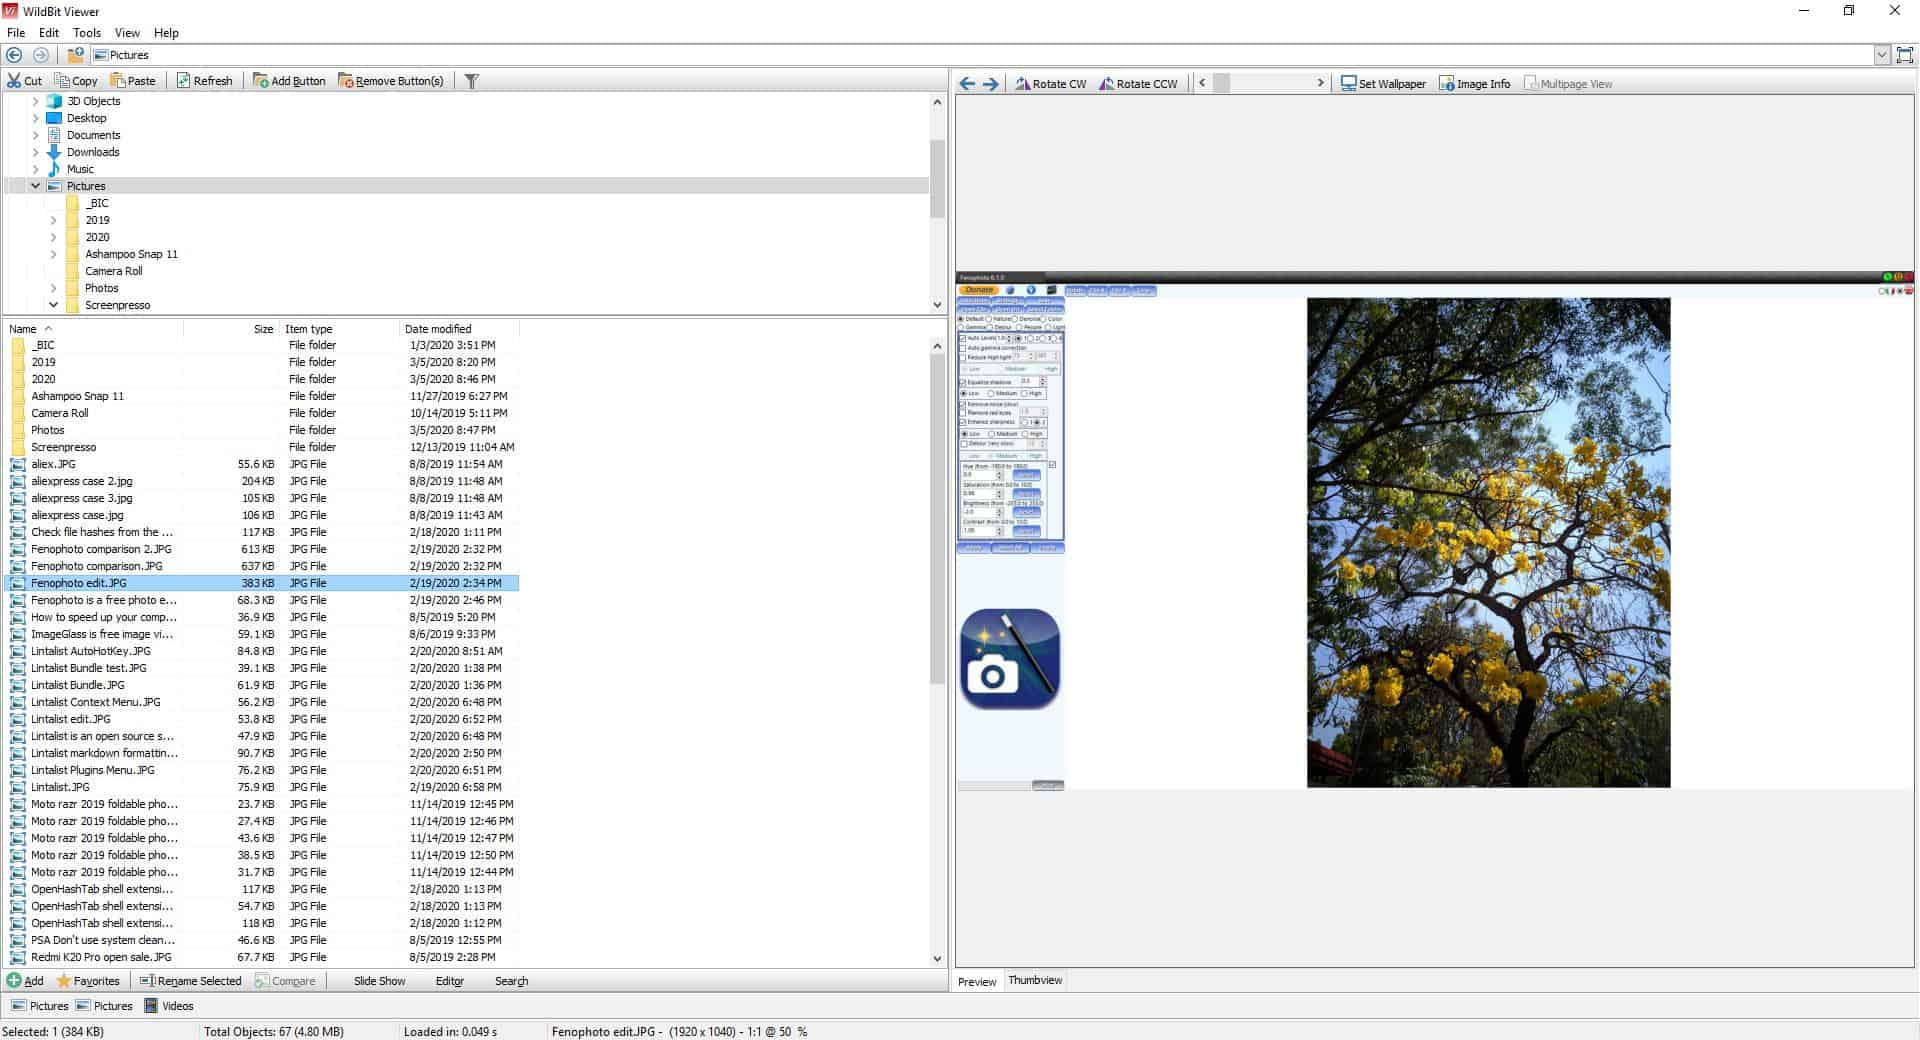 WildBit Viewer is a freeware image viewer that comes with an editor, batch renamer, slideshow tool and more